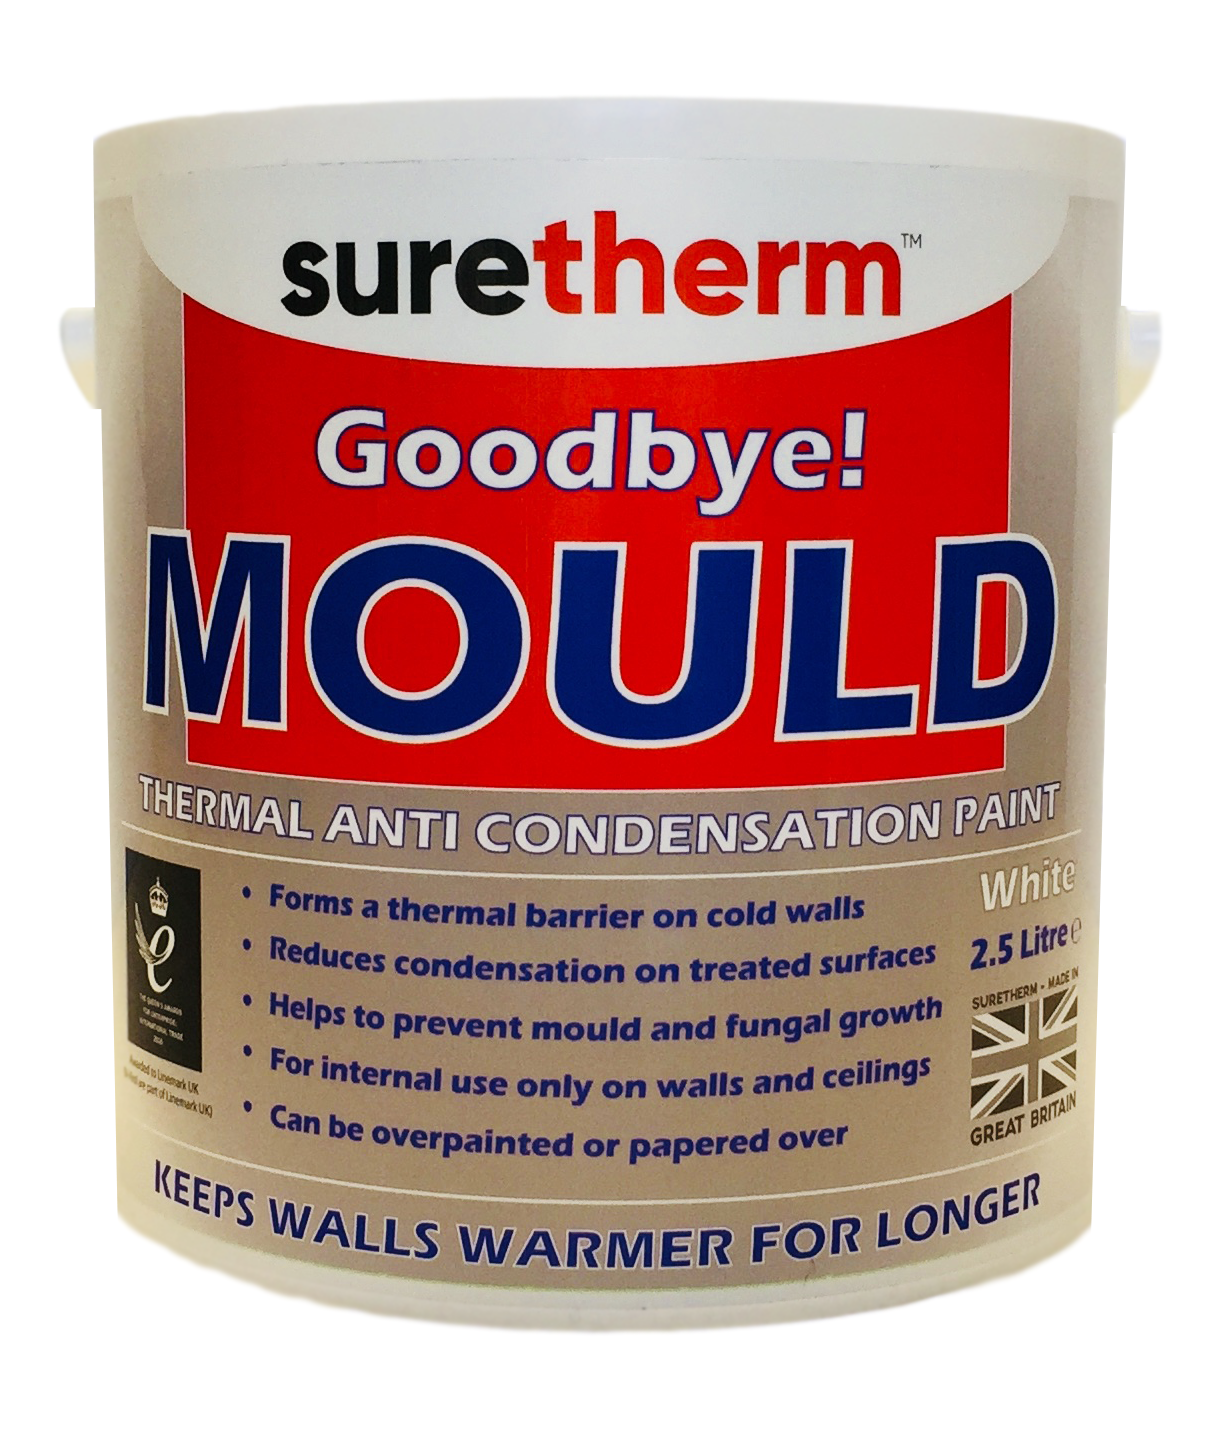 Suretherm Thermal Anti Condensation Paint 2.5 Litre